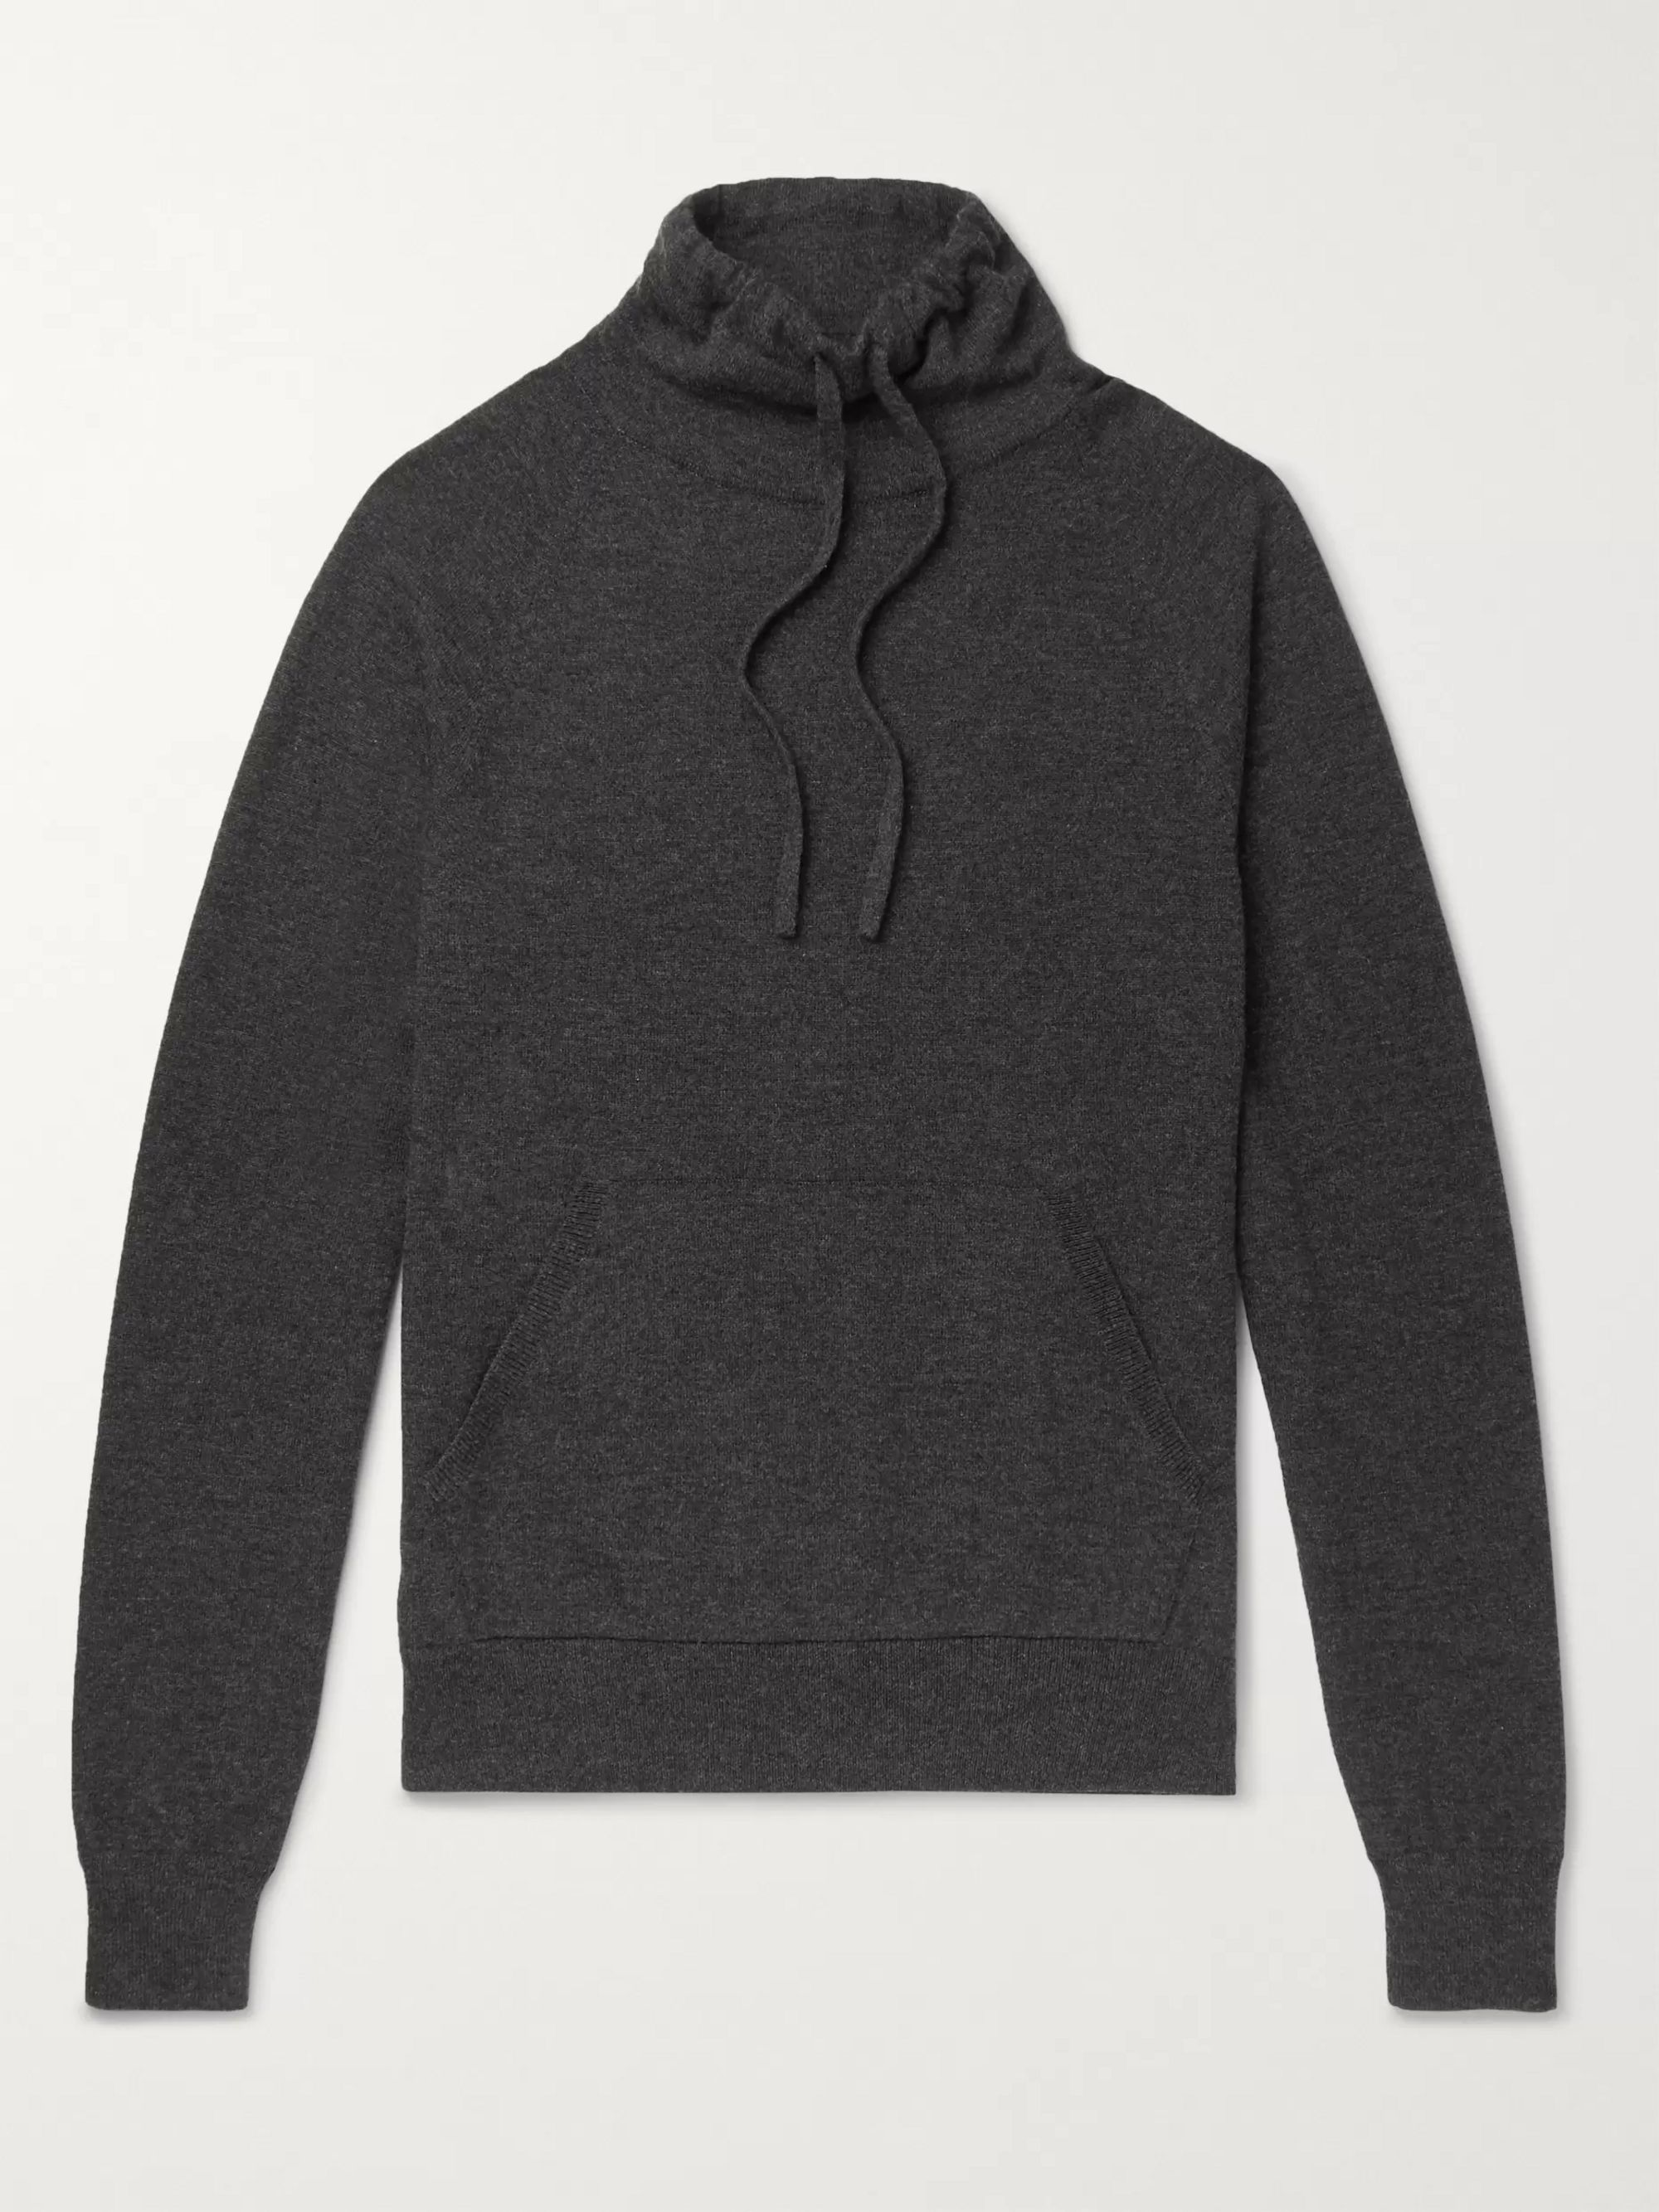 Mr P. Wool and Cashmere-Blend Drawstring Mock-Neck Sweater